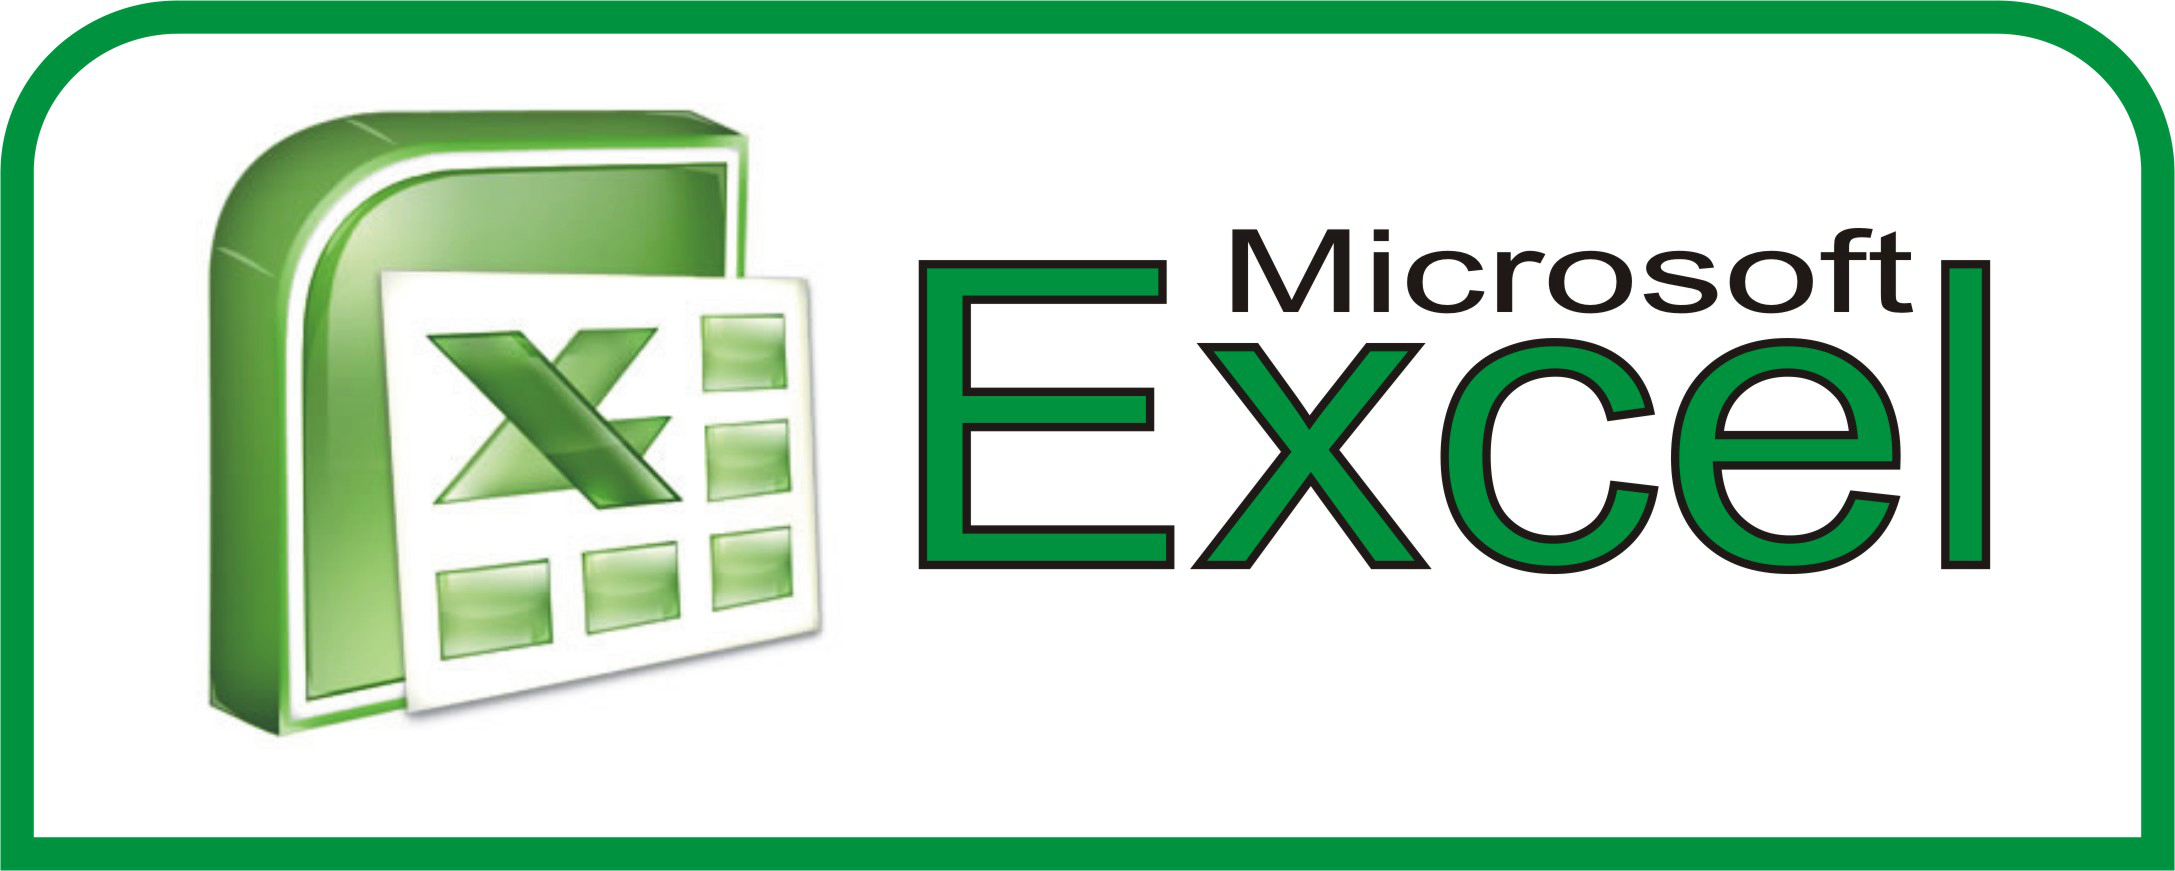 Ediblewildsus  Pleasing  Excel Shortcuts You Probably Didnt Know About  Techdissected With Glamorous How To Round Down In Excel Besides How To Use Average Function In Excel Furthermore How To Make A Bar Graph On Excel With Attractive Excel Exponent Also Dcount Excel In Addition Forecast Function In Excel And Microsoft Excel Macros As Well As Excel Recovery Additionally Data Table In Excel From Techdissectedcom With Ediblewildsus  Glamorous  Excel Shortcuts You Probably Didnt Know About  Techdissected With Attractive How To Round Down In Excel Besides How To Use Average Function In Excel Furthermore How To Make A Bar Graph On Excel And Pleasing Excel Exponent Also Dcount Excel In Addition Forecast Function In Excel From Techdissectedcom